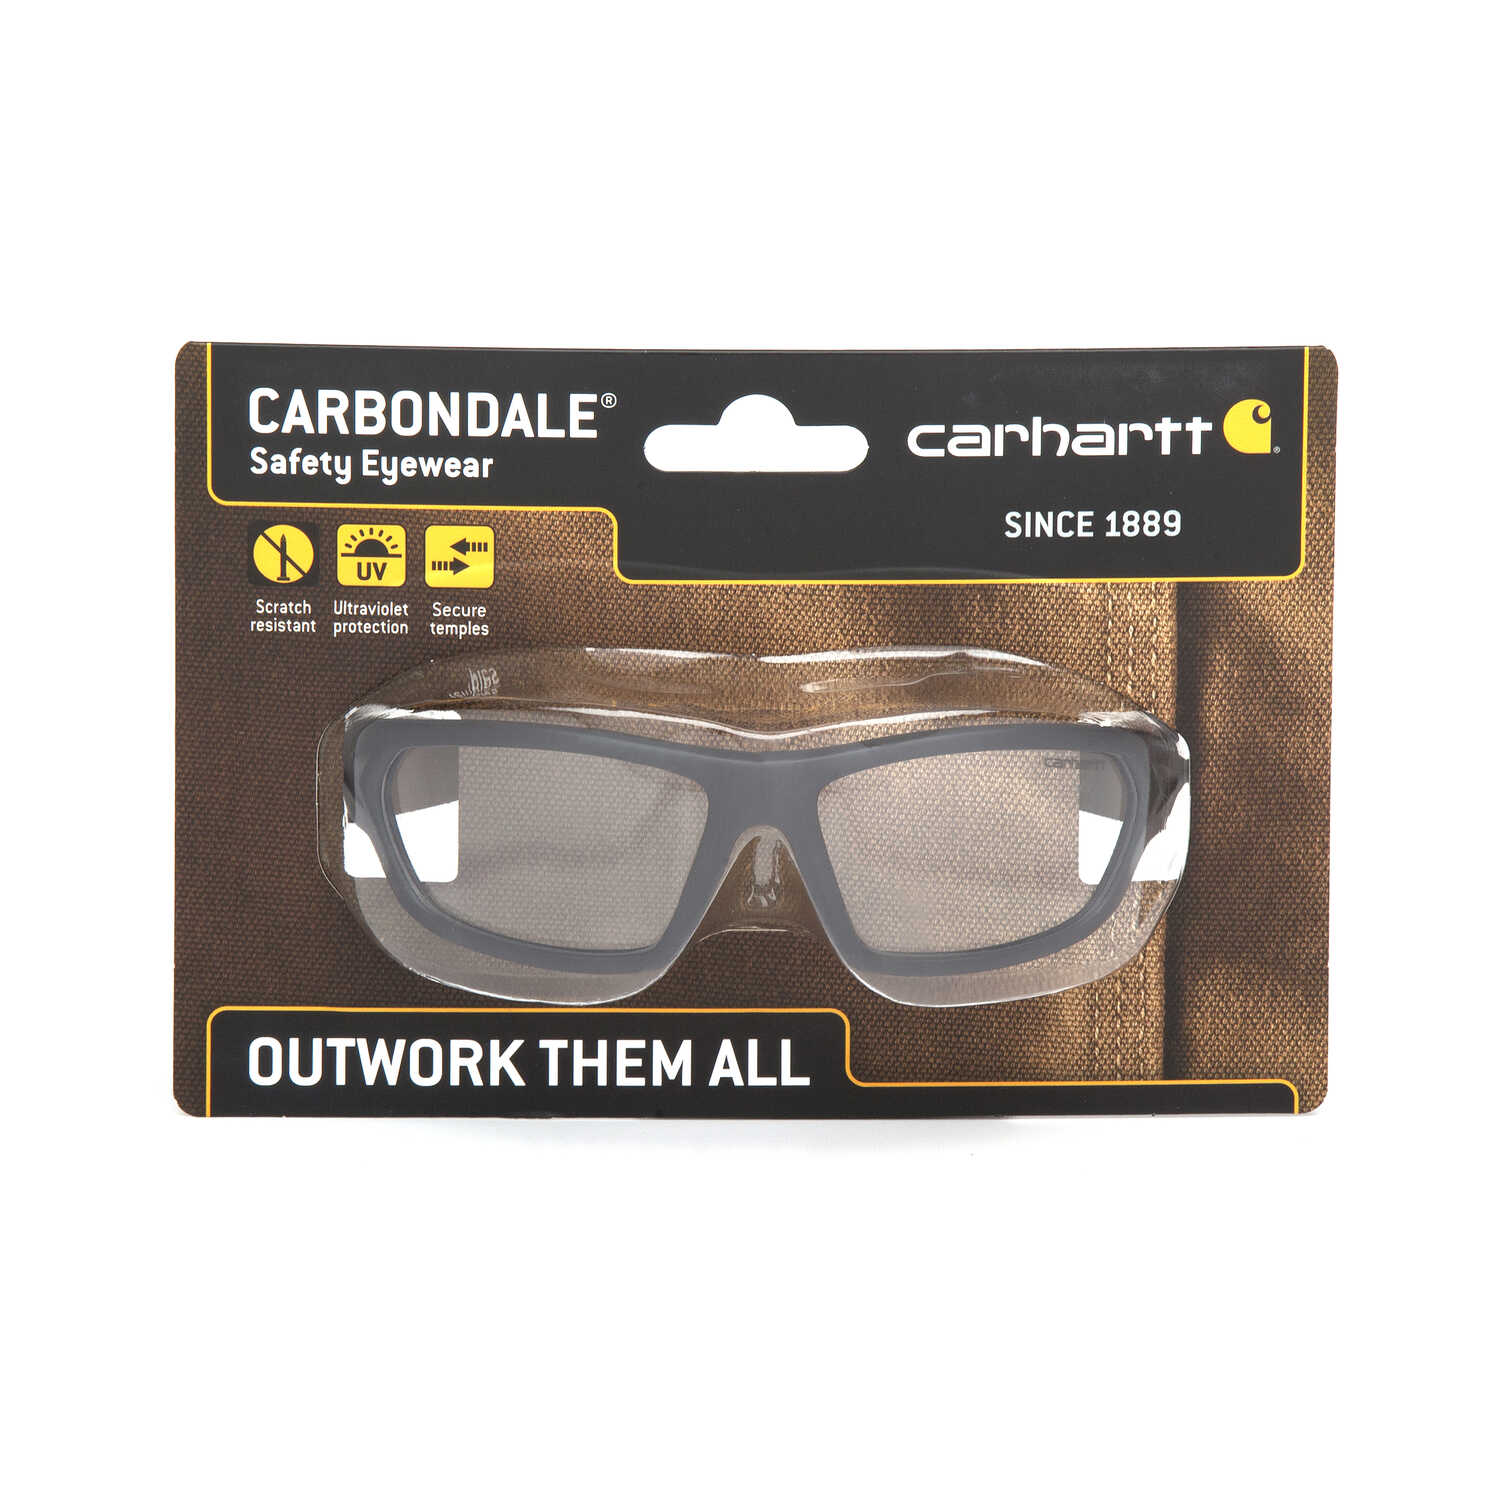 Carhartt  Carbondale  Anti-Fog Safety Glasses  Clear Lens Black Frame 1 pc.